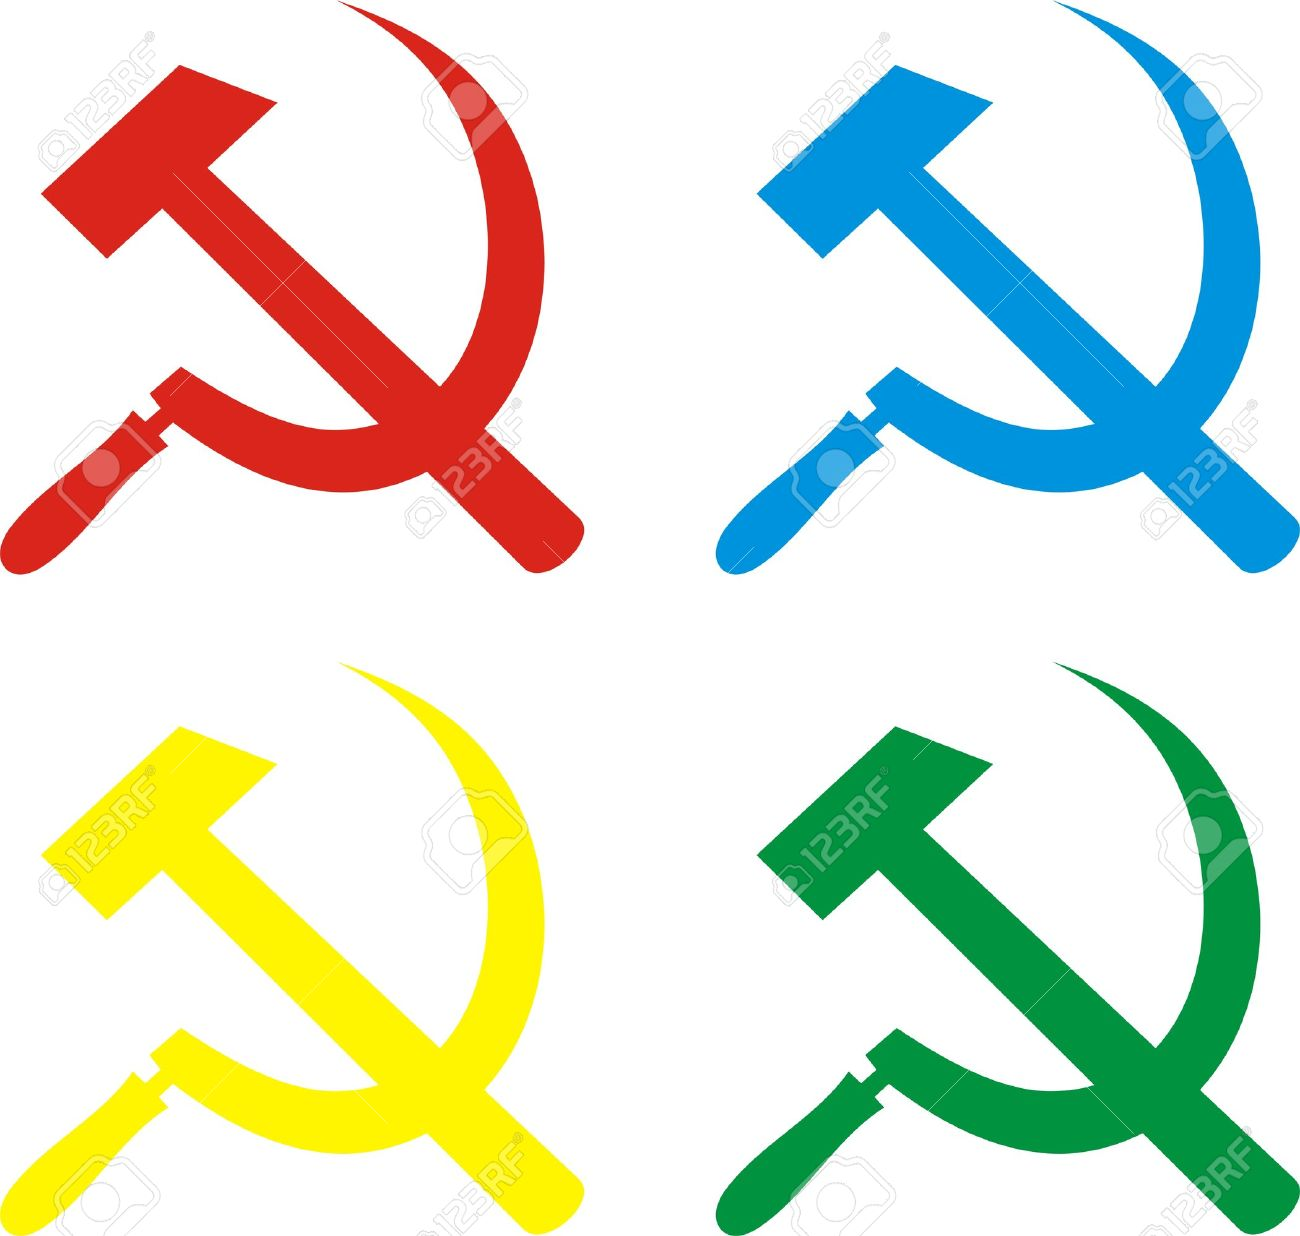 Vector set of communism sign hammer and sickle royalty free vector set of communism sign hammer and sickle stock vector 5804474 biocorpaavc Gallery